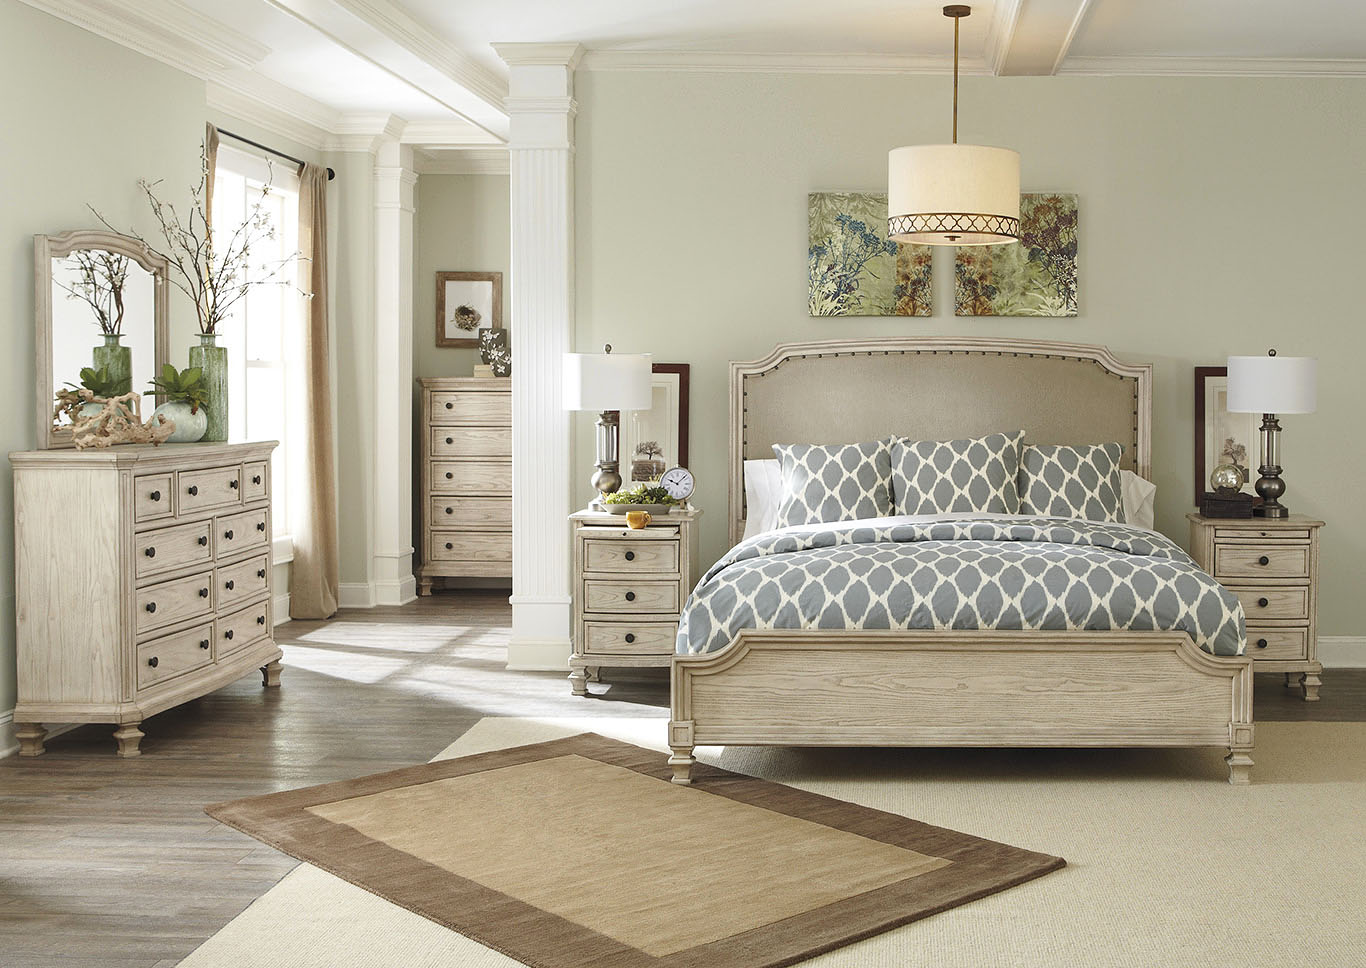 Demarlos California King Upholstered Panel Bed w/Dresser, Mirror, Drawer Chest & Night Table,Signature Design By Ashley